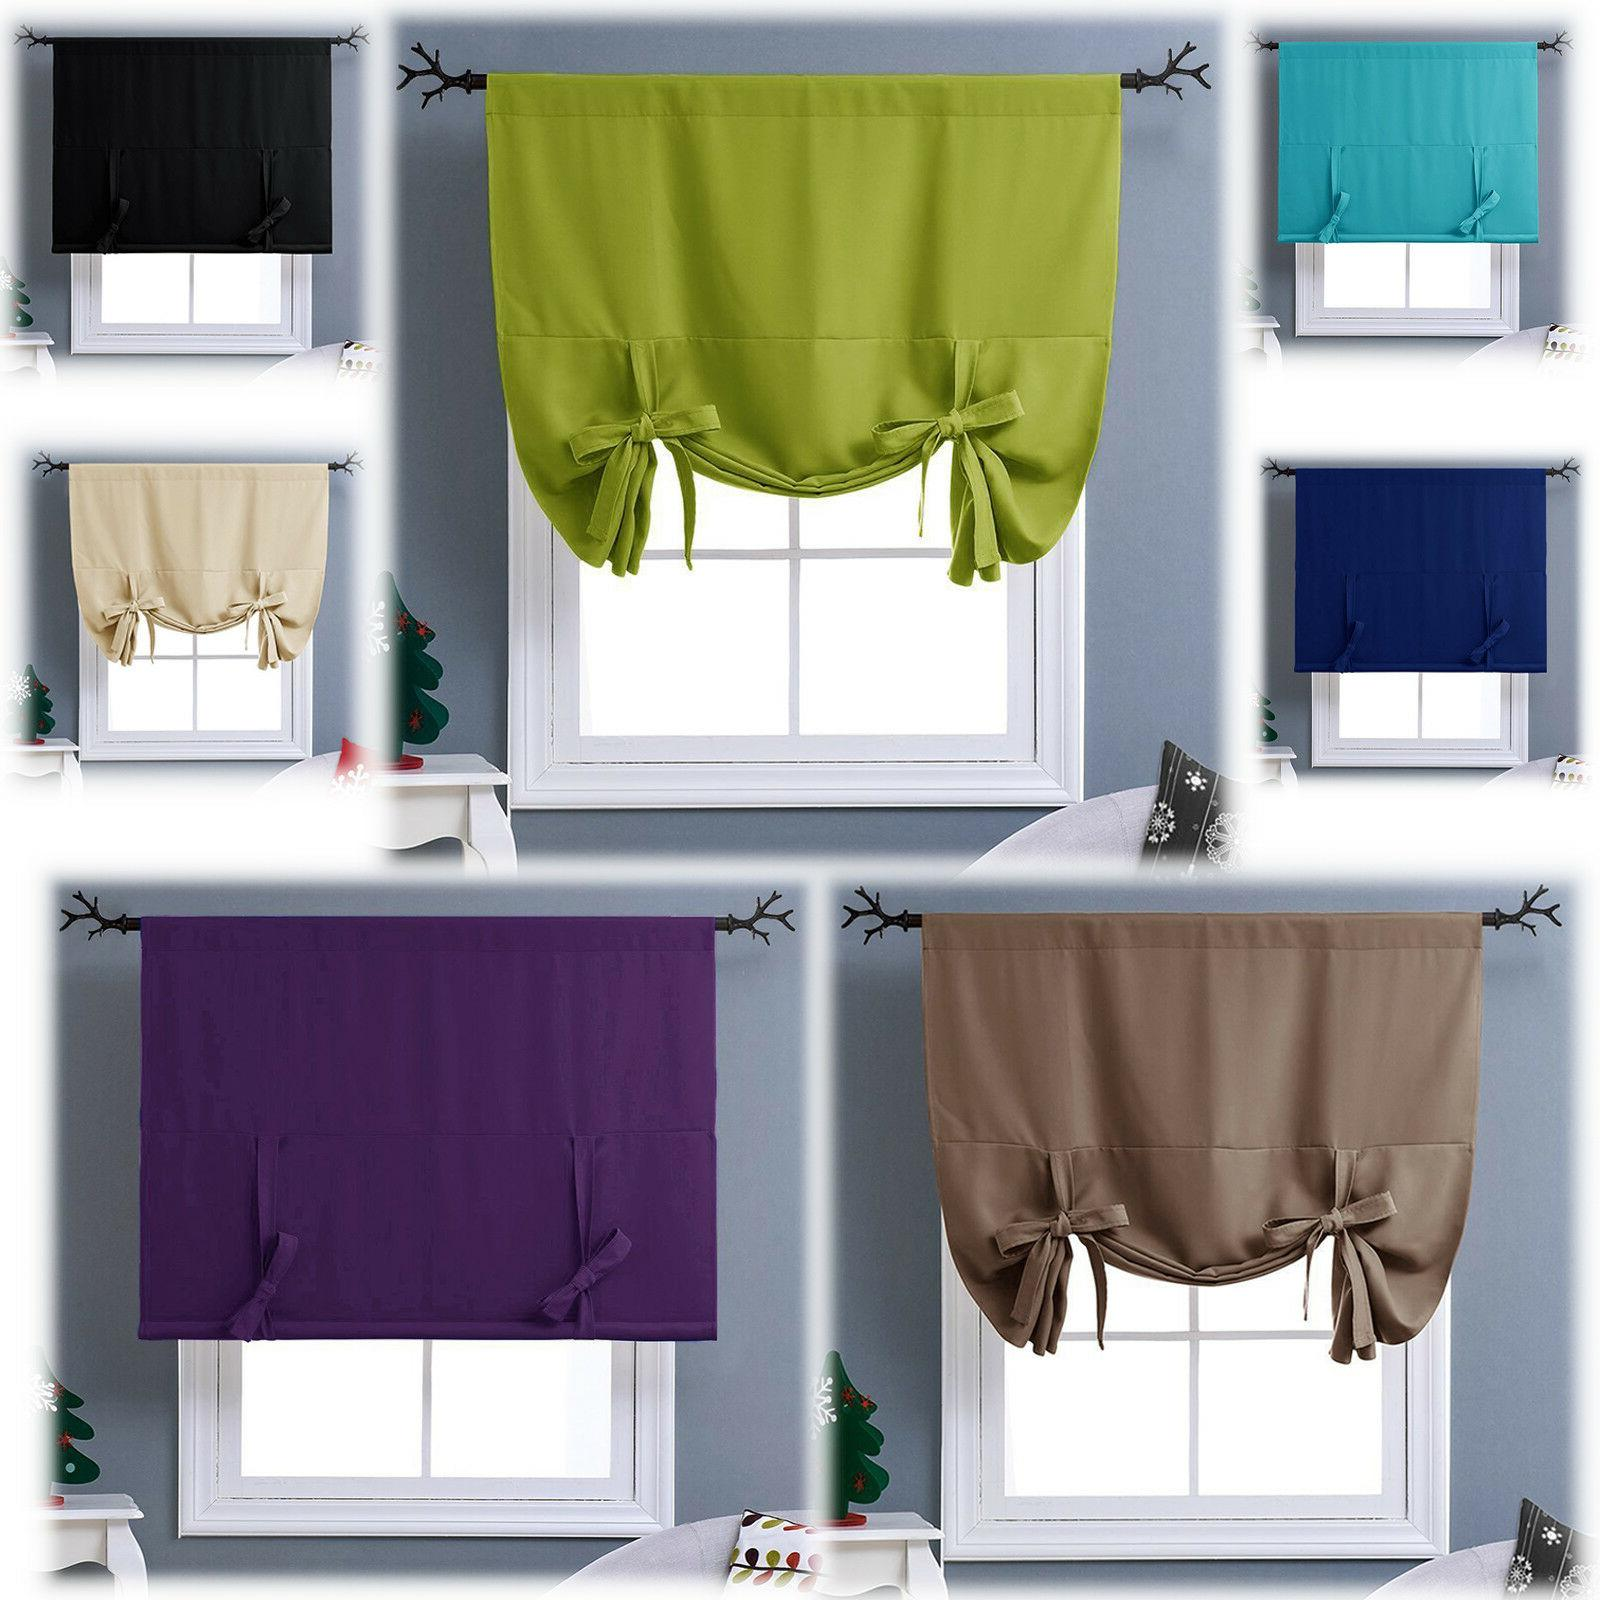 thermal drapes curtains tie up insulated shades